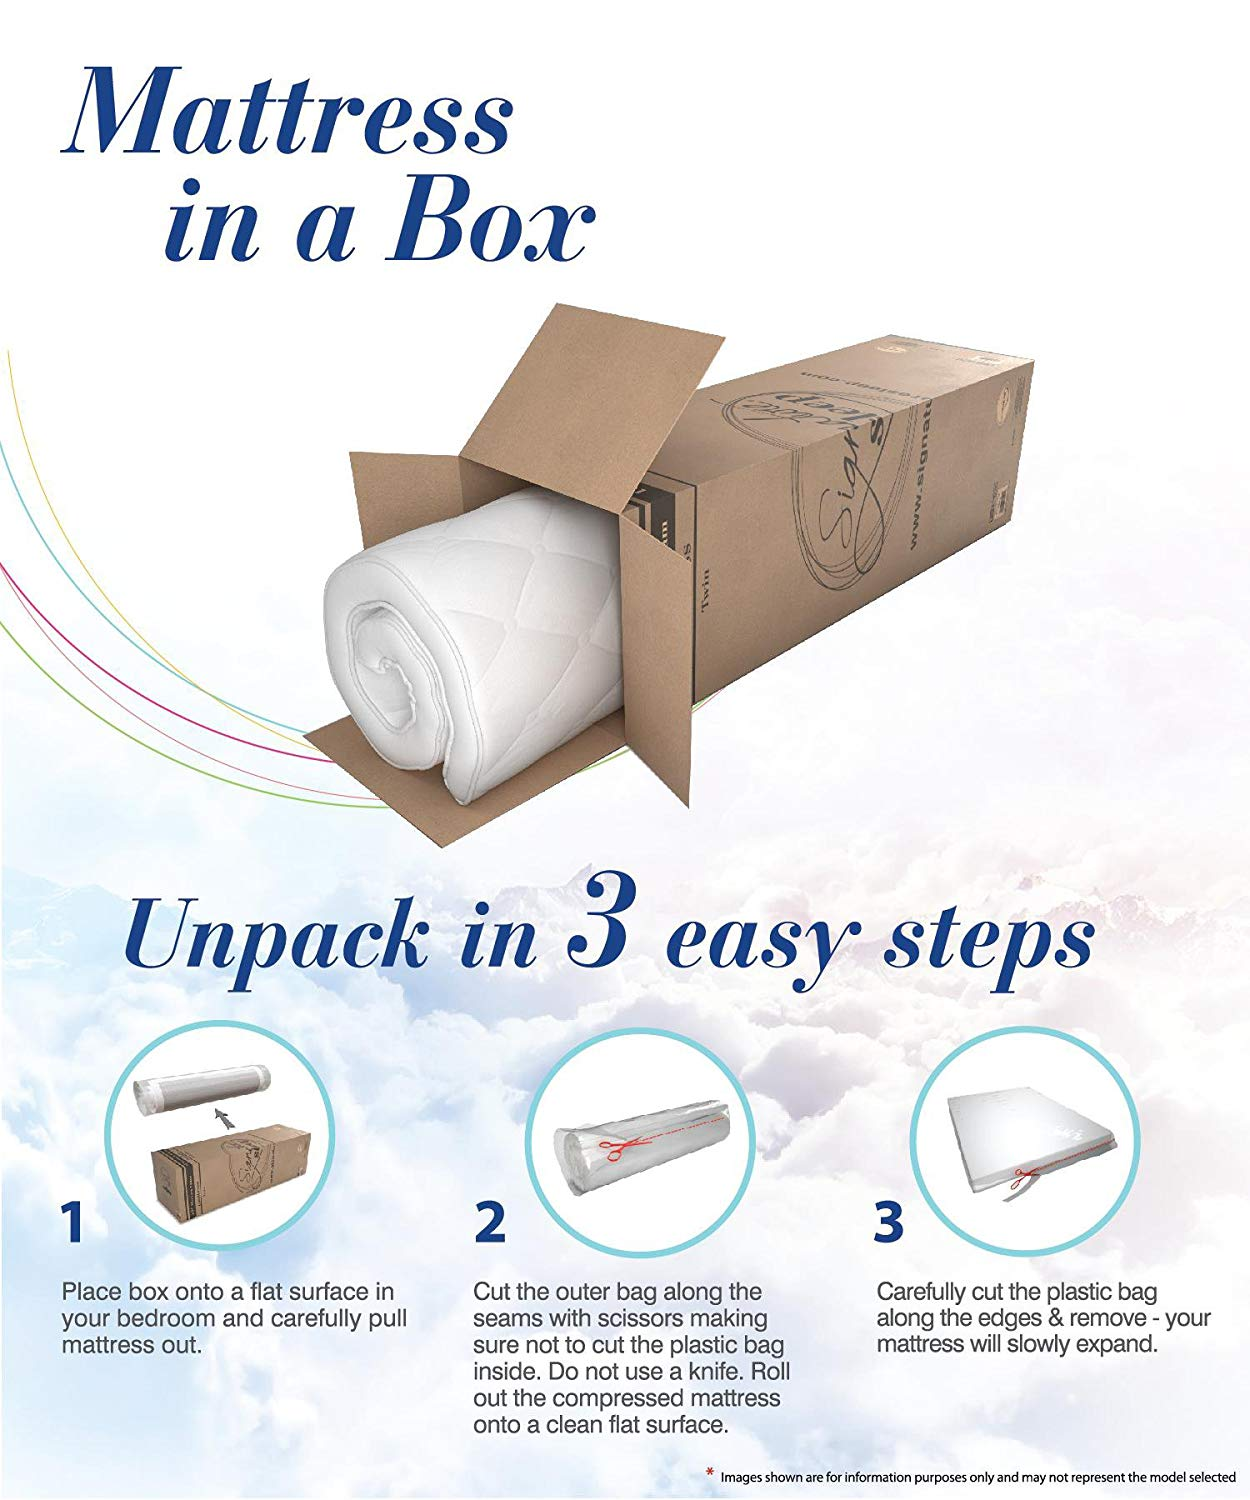 Mattress in a Box Unpacking